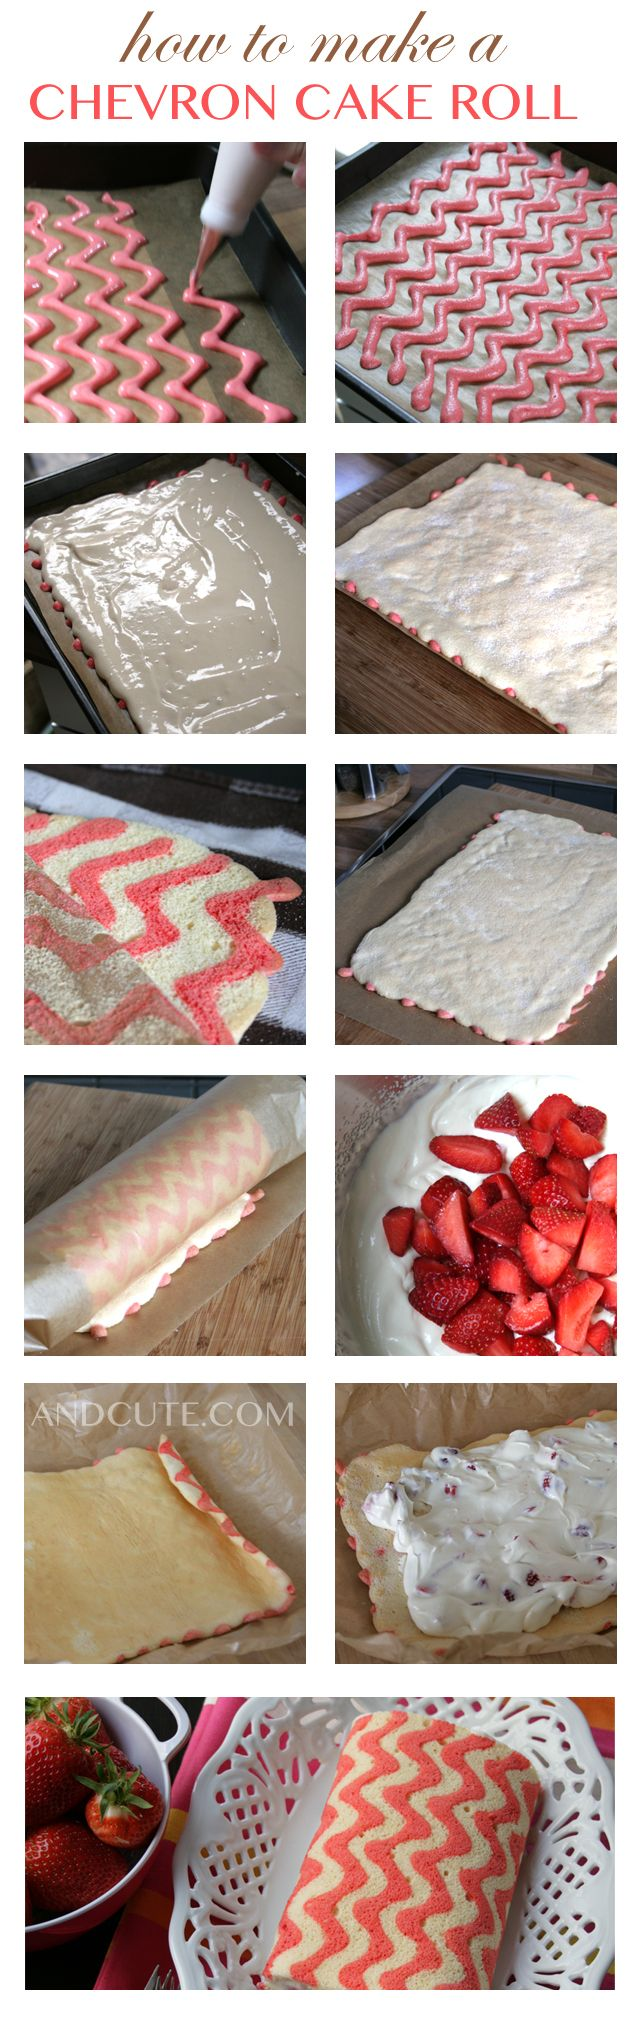 Chevron cake roll.